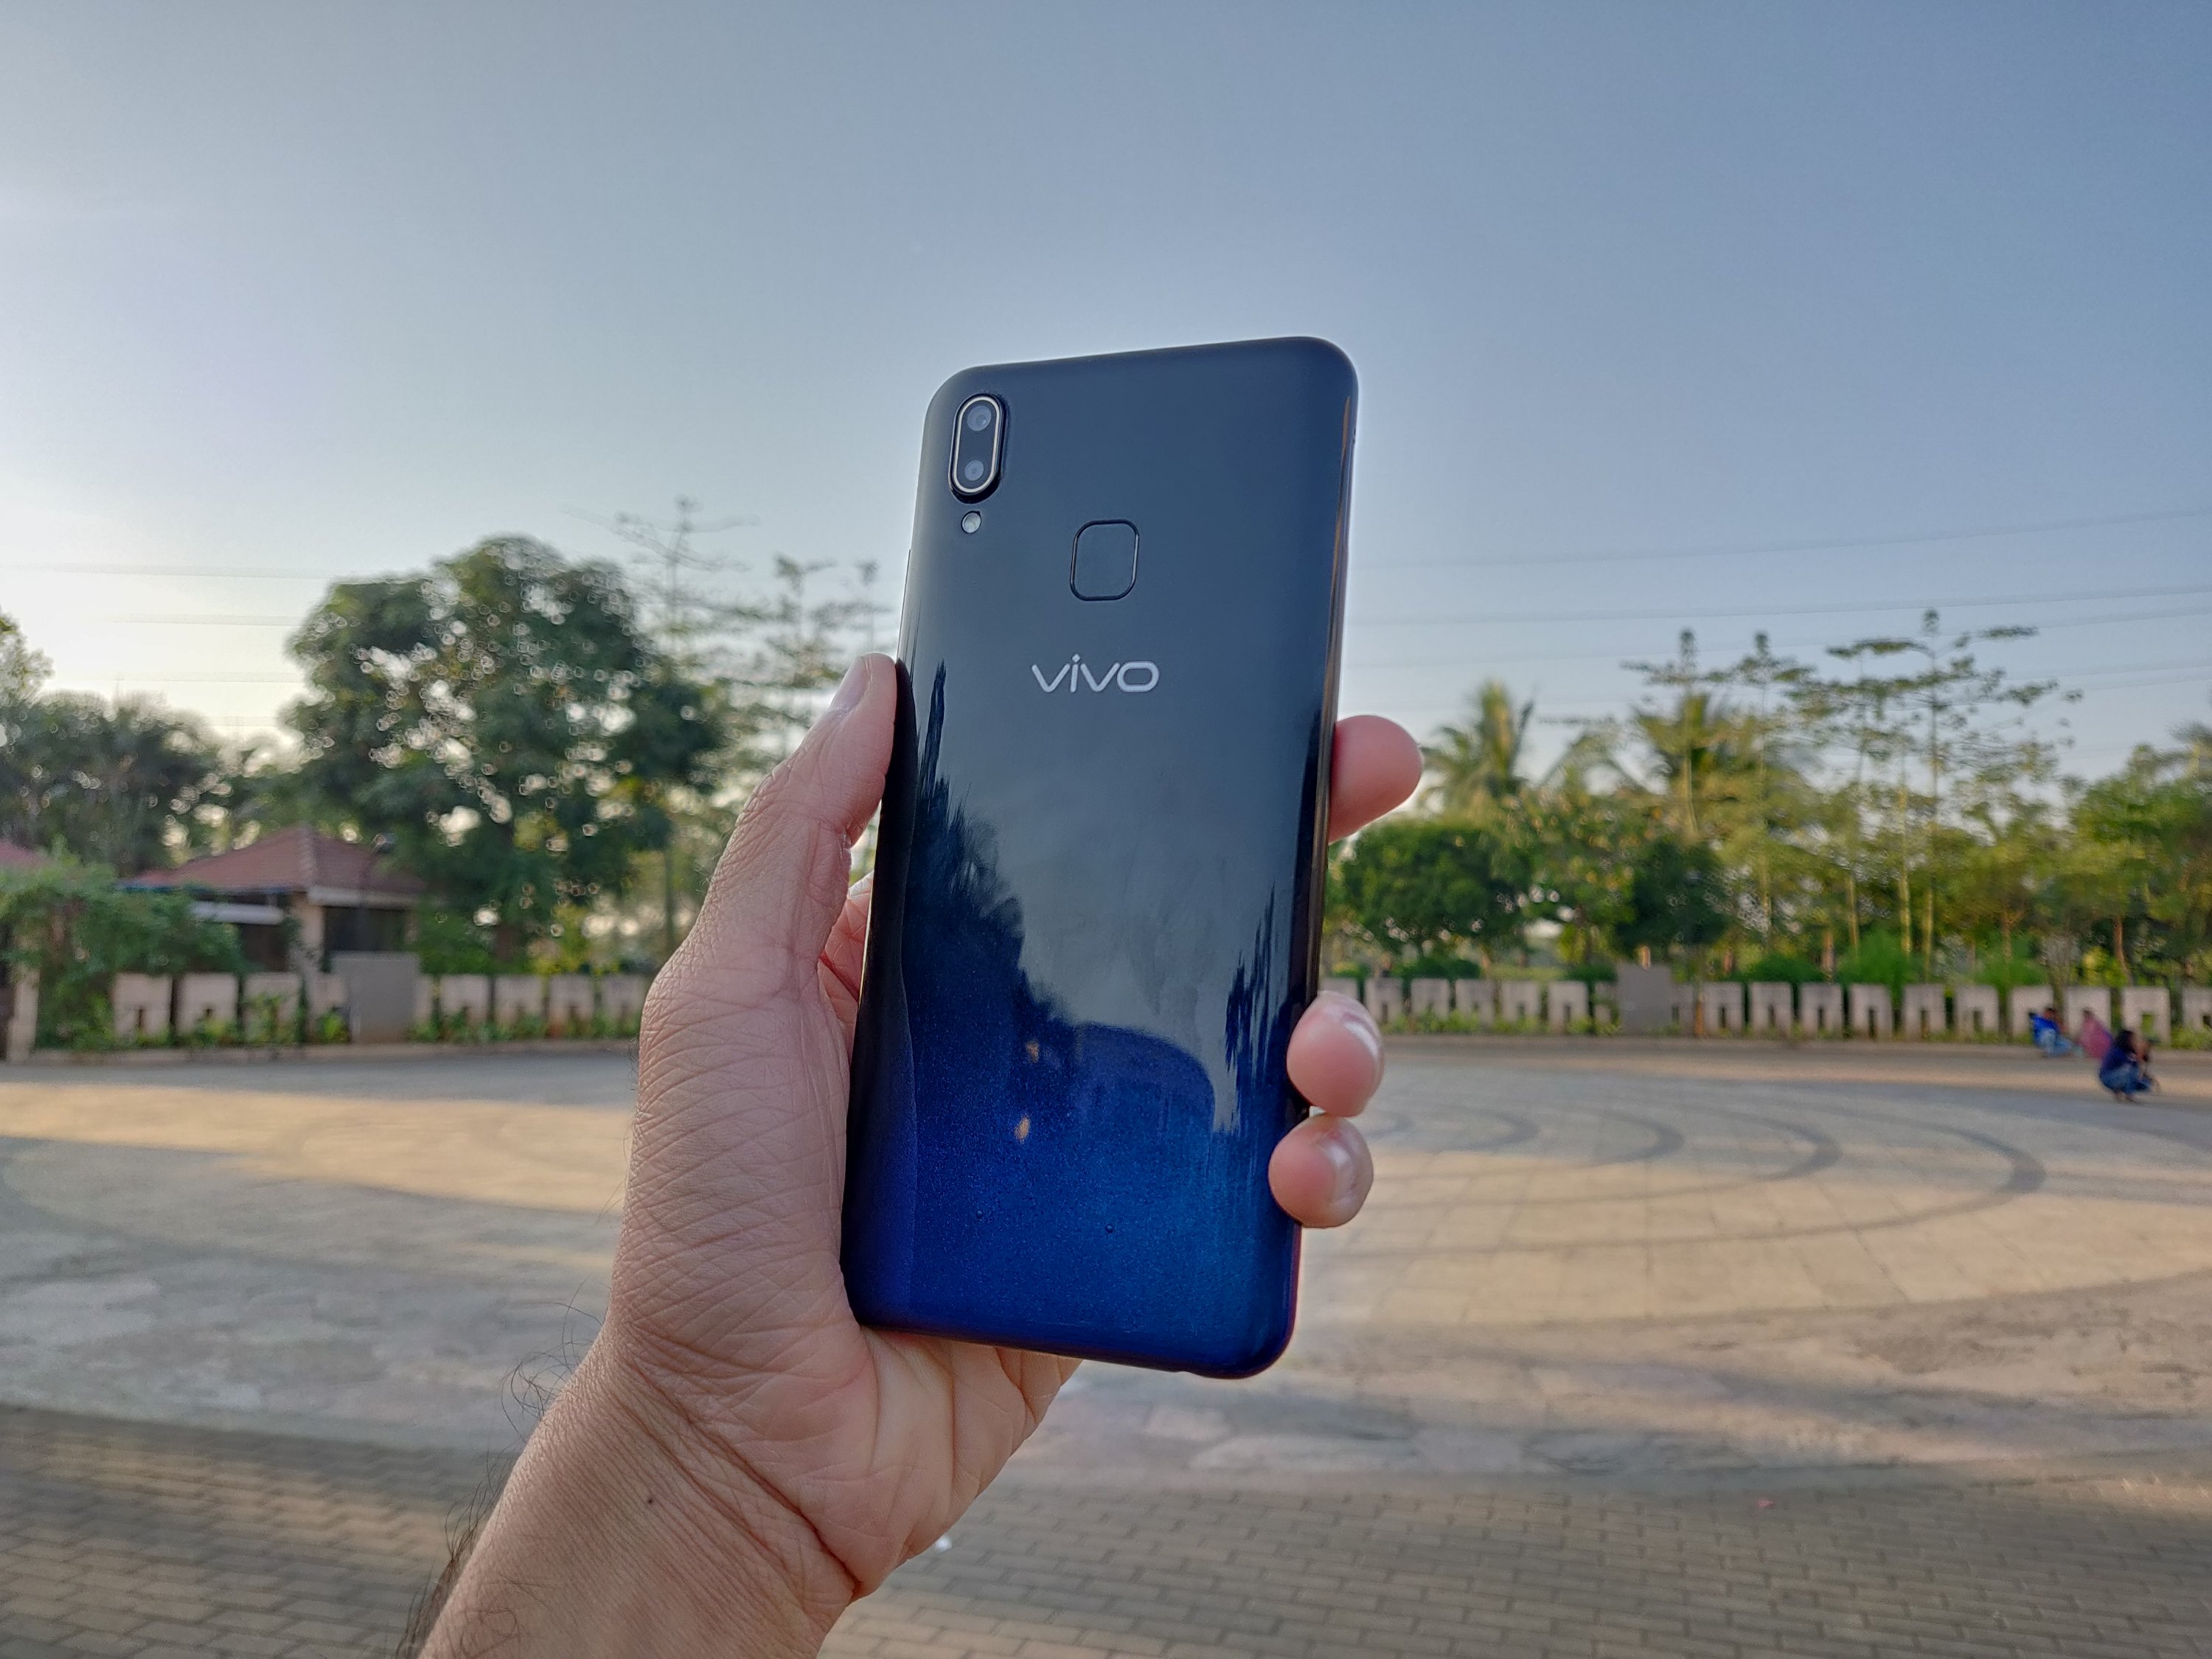 Vivo Y95 Review: Big battery, bigger price tag - EOTO Tech